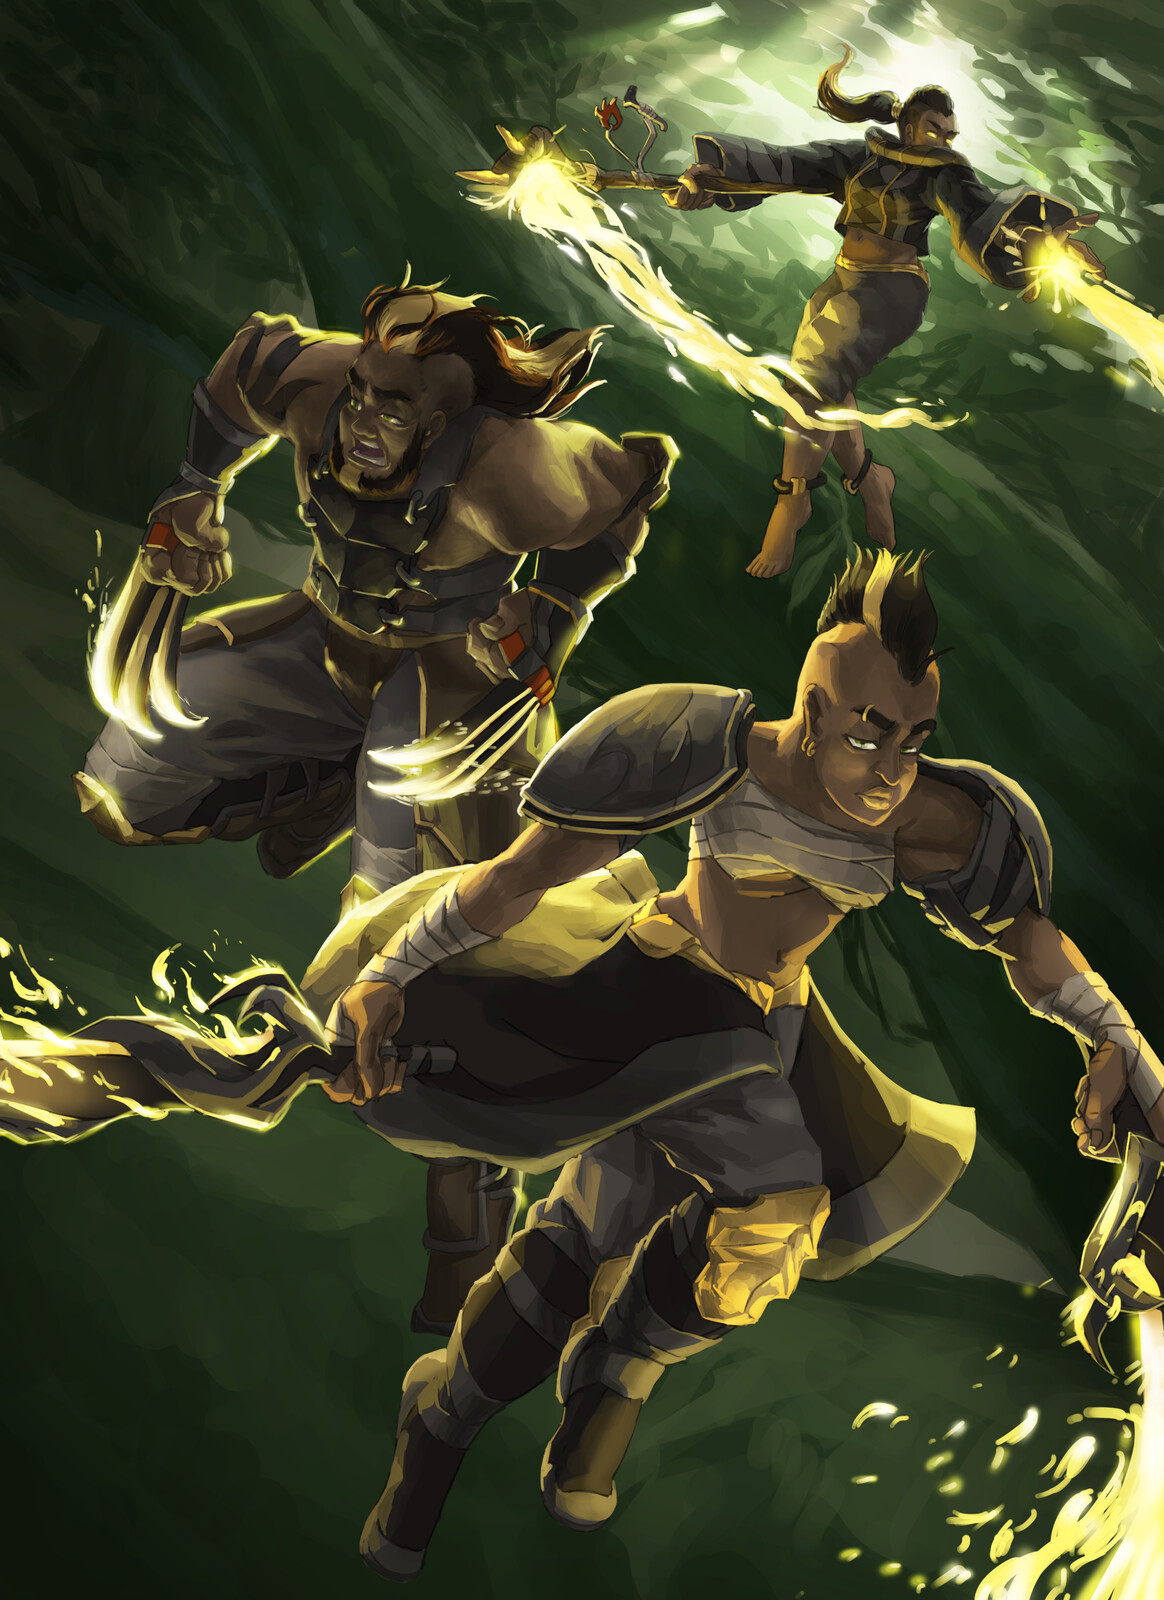 Protectors of the Golden Flame